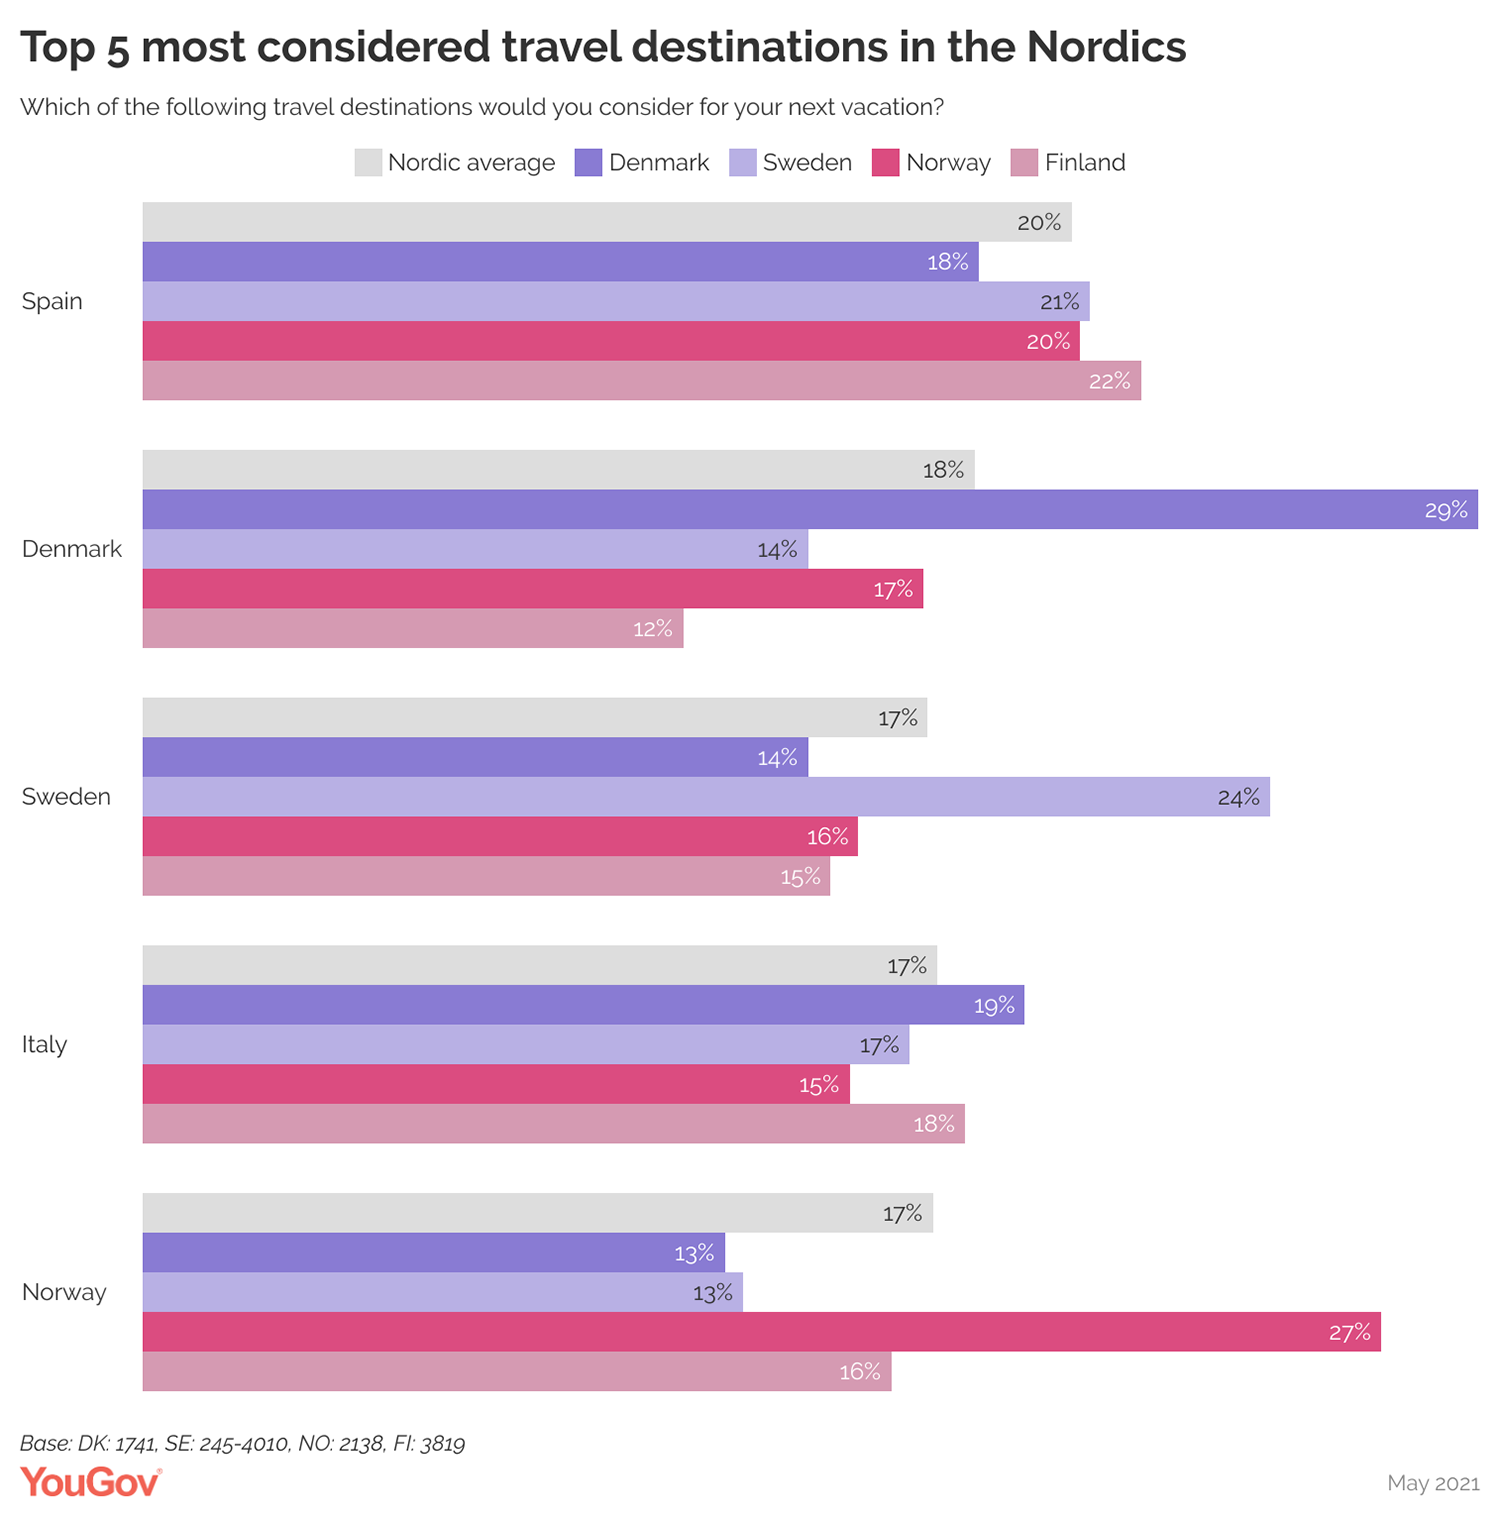 Top 5 most considered travel destinations in the Nordics